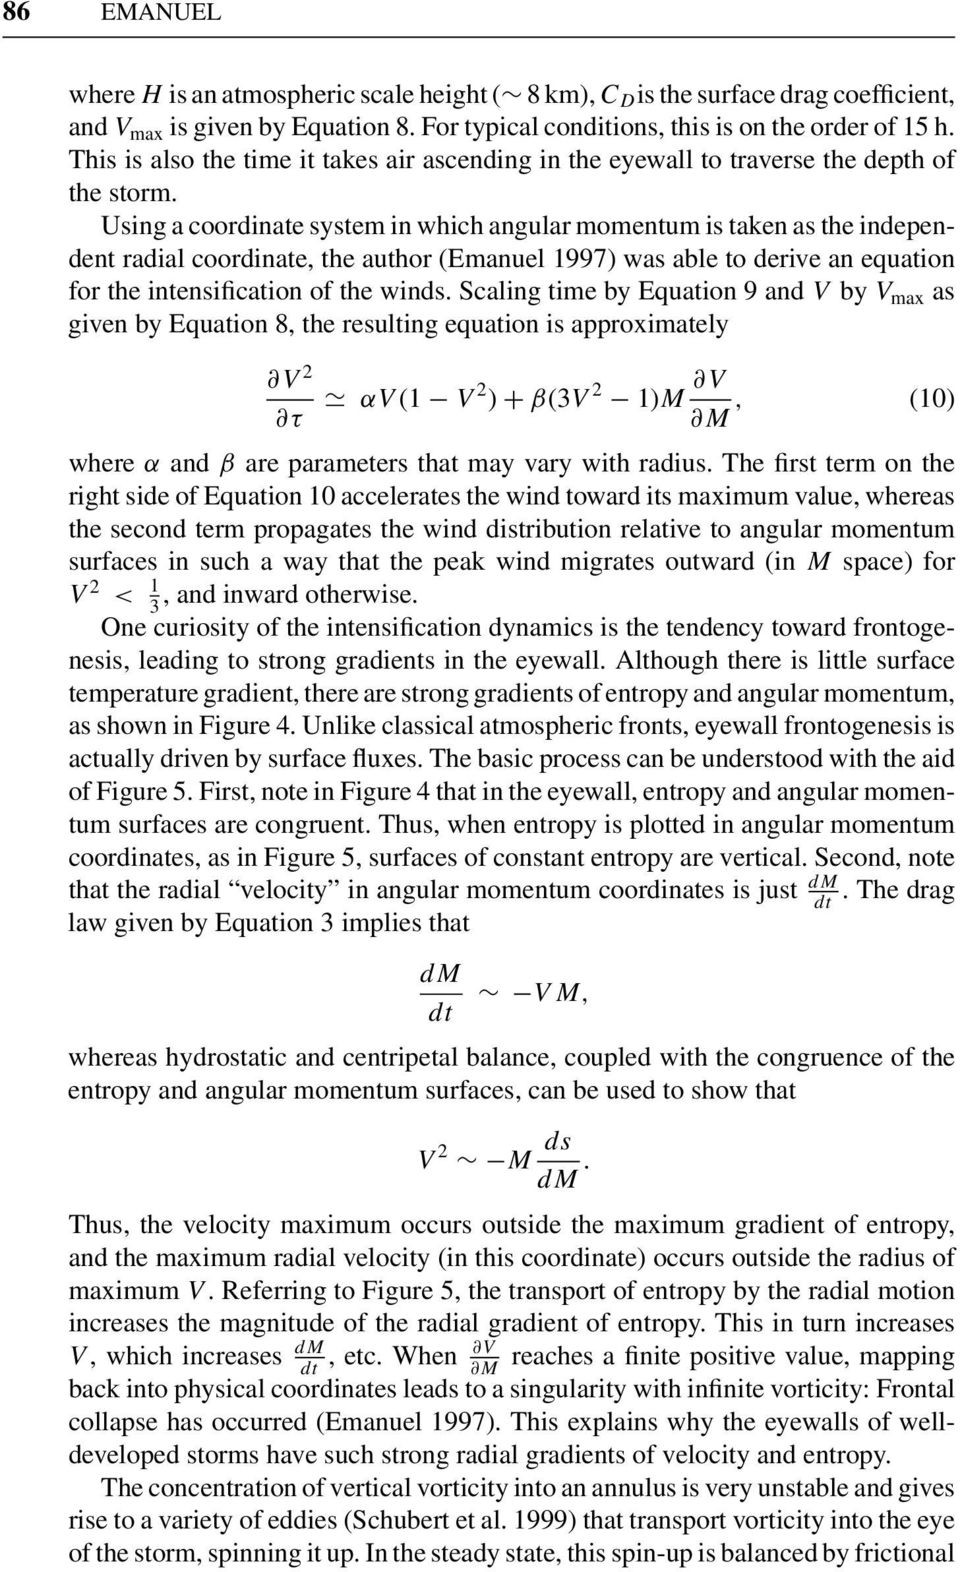 Using a coordinate system in which angular momentum is taken as the independent radial coordinate, the author (Emanuel 1997) was able to derive an equation for the intensification of the winds.